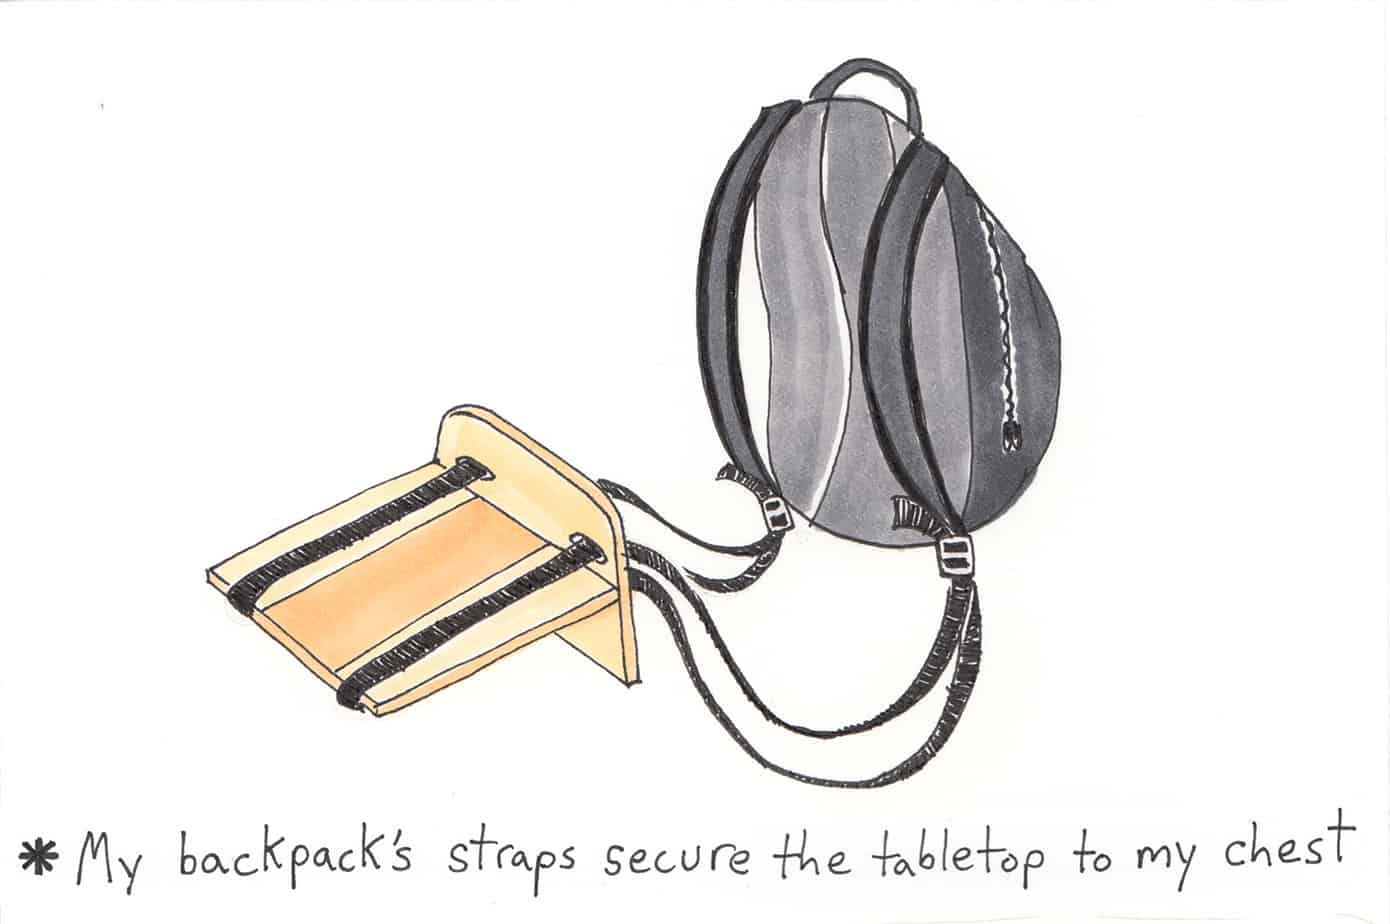 diagram of portable tabletop attached to backpack